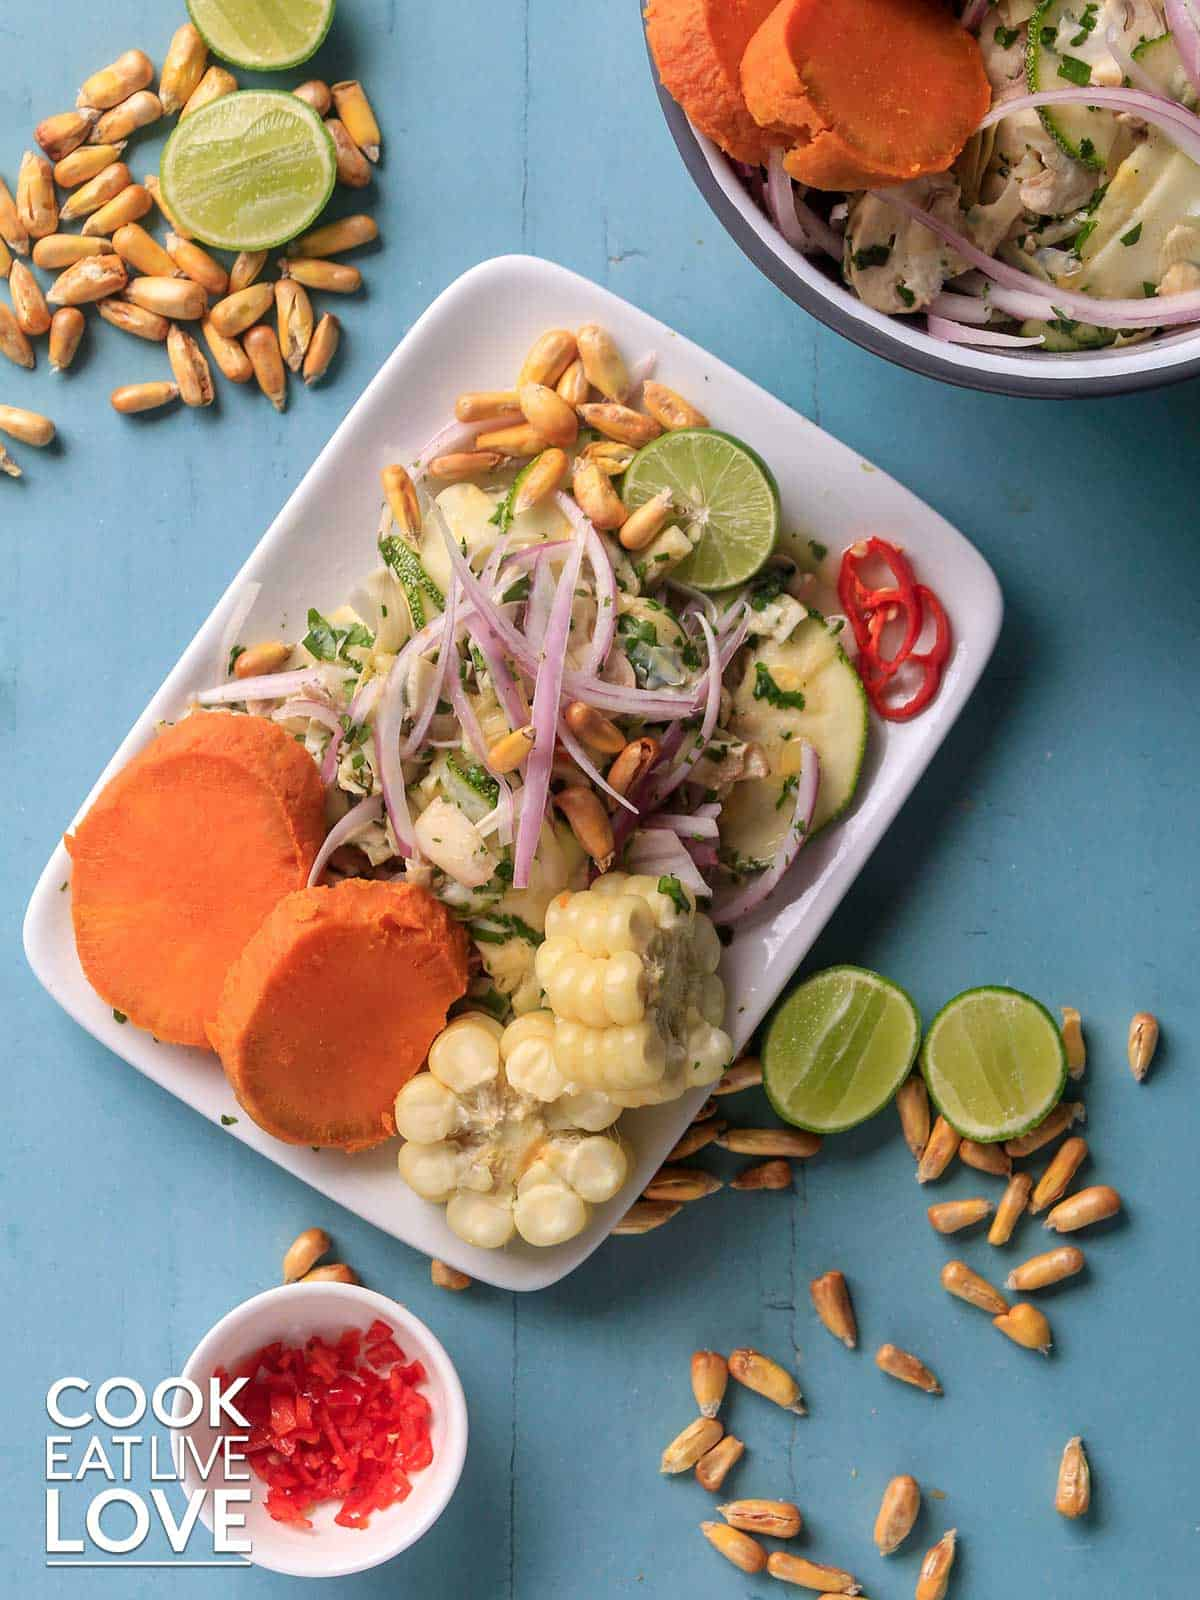 Vegan ceviche on a plate with sweet potatoes and corn